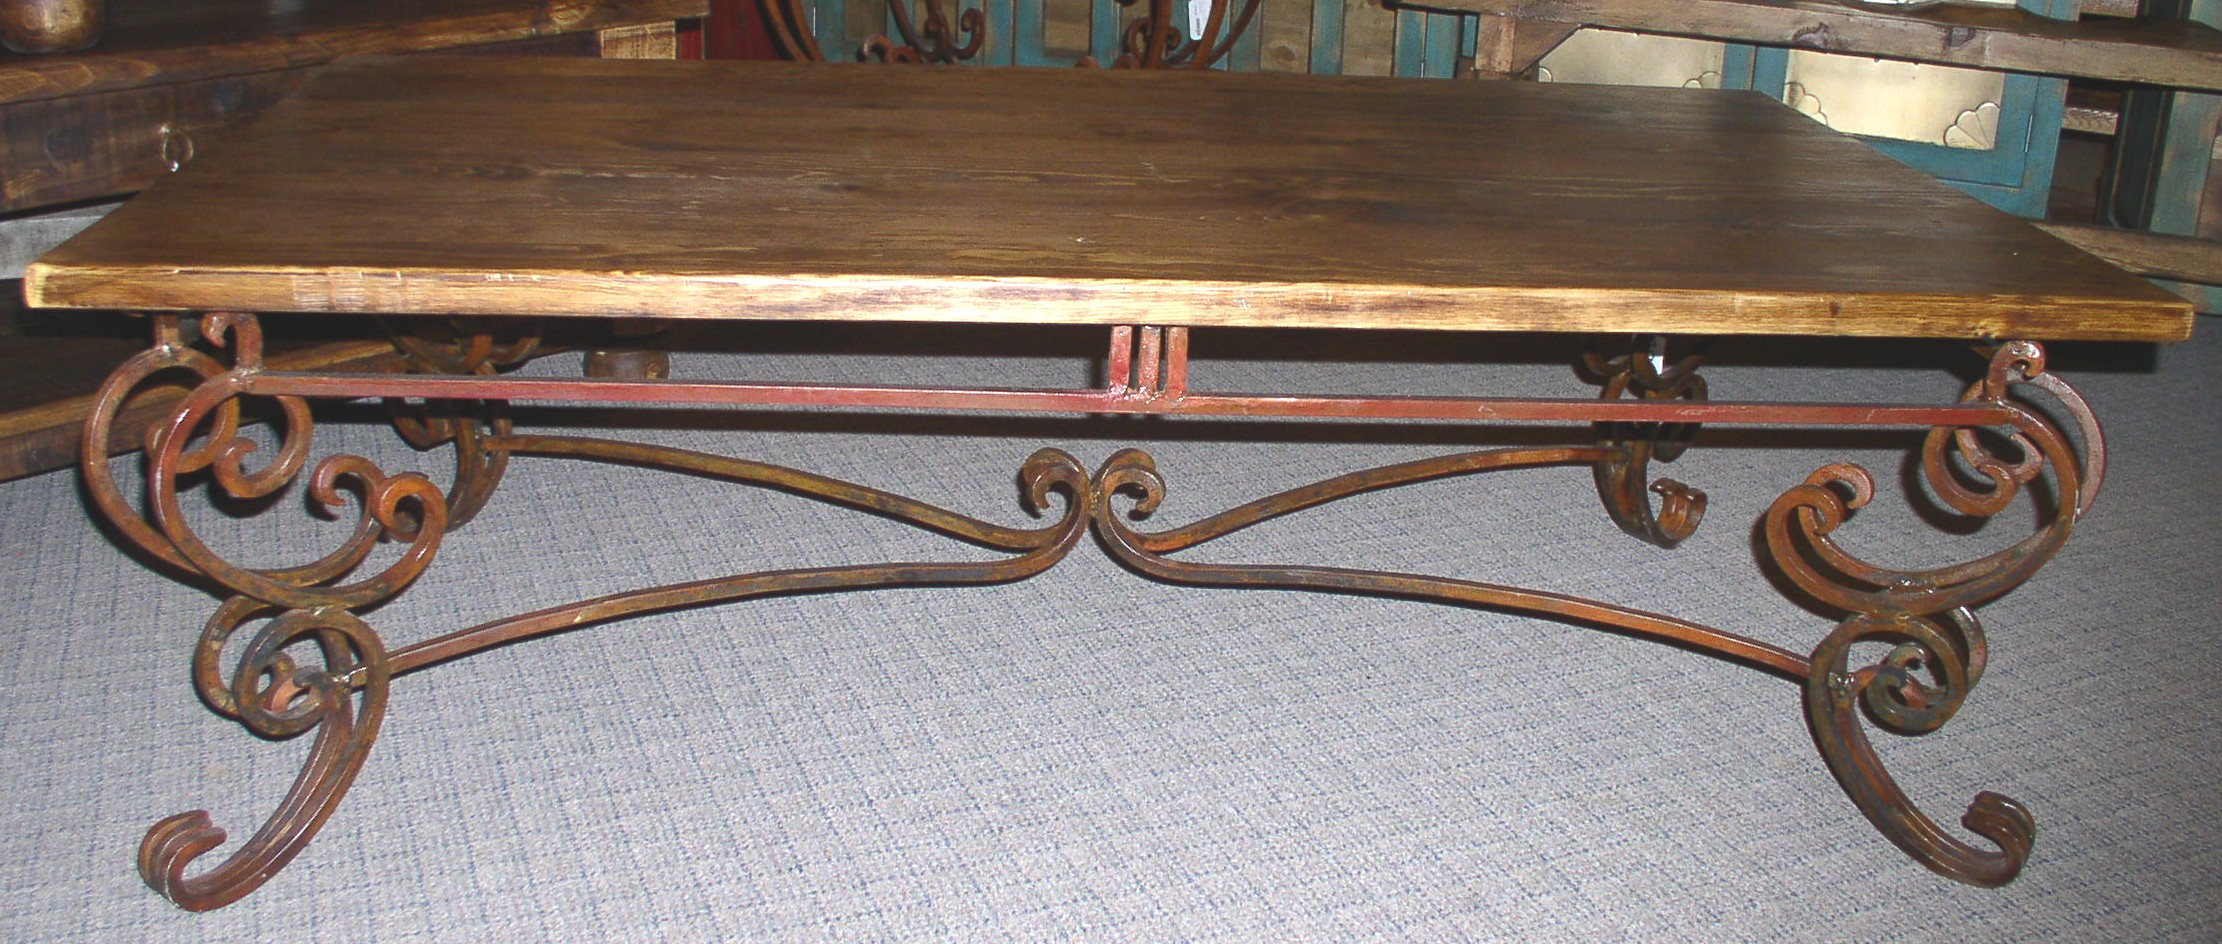 ALIEUR  iron base coffee table (DIO) 3.jpg